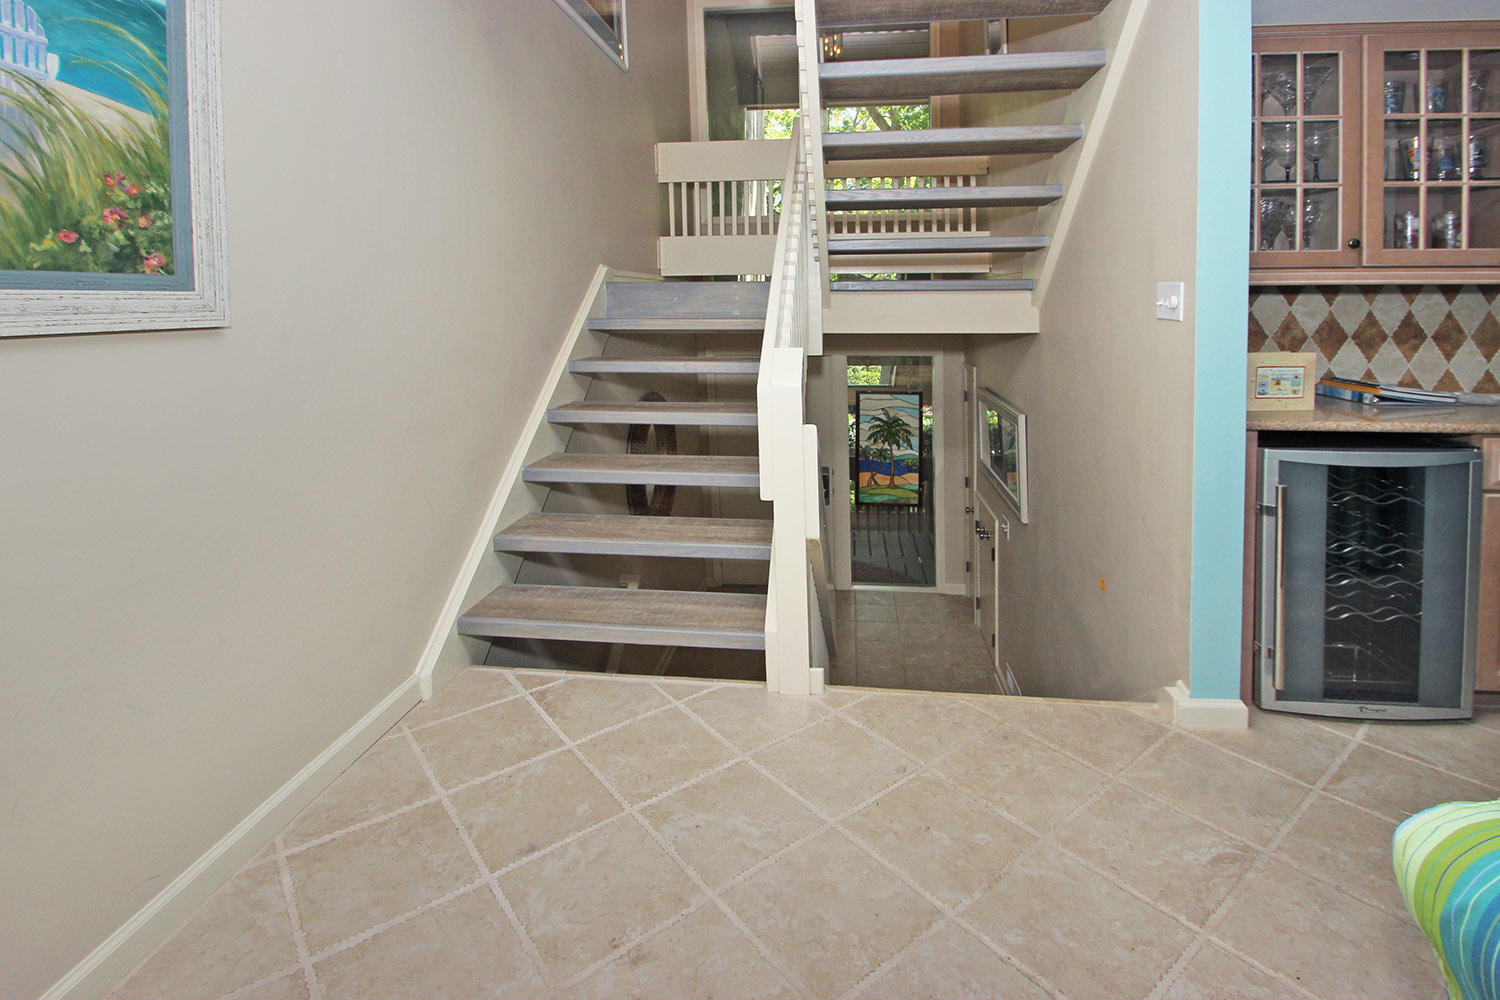 Stairway from entrance to main living area